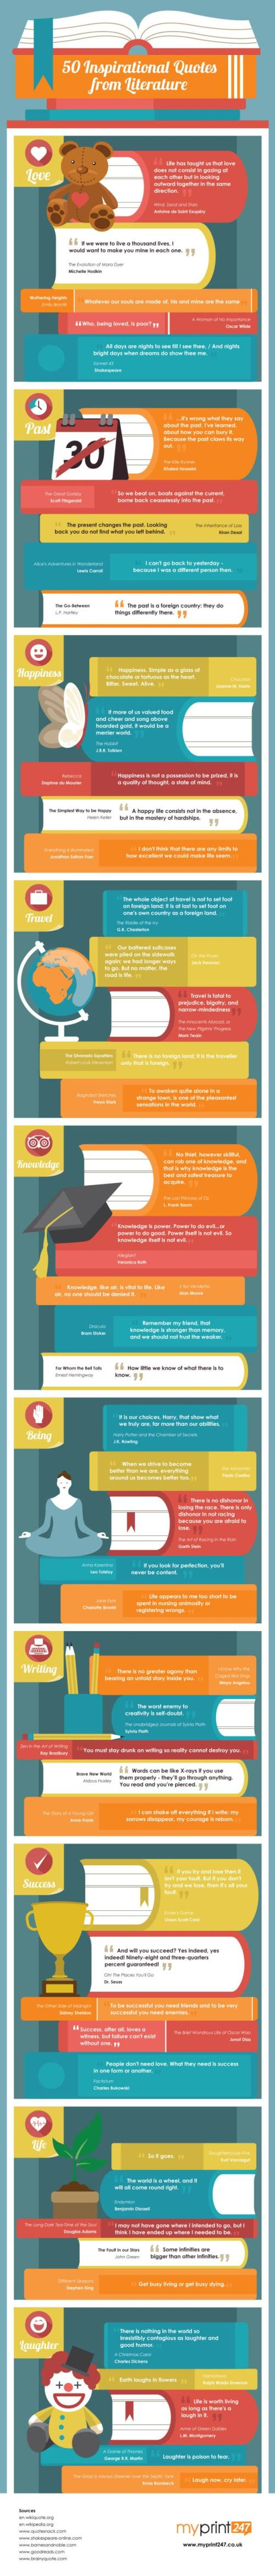 Infographic: 50 Inspirational Quotes from Literature Infographic